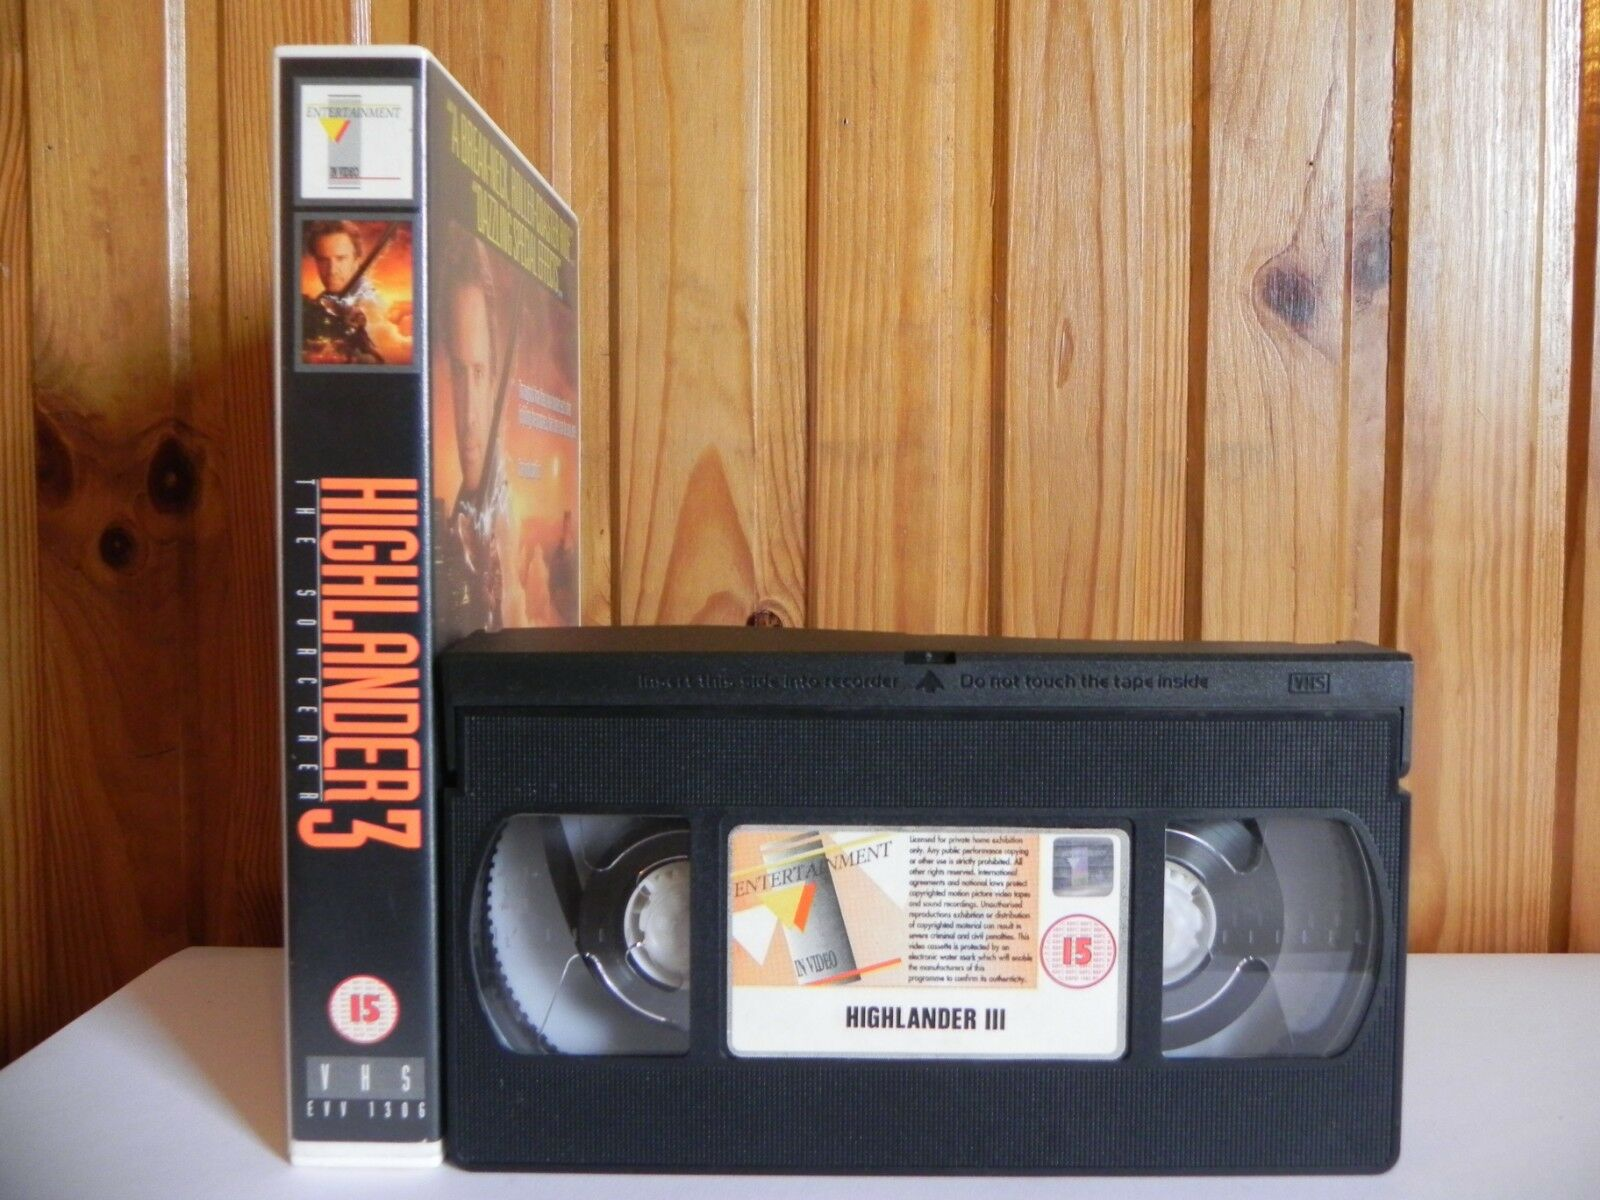 Action, Action & Adventure, Fantasy, Highlander, Occult/Supernatural, PAL, Sci-Fi & Fantasy, VHS, Video